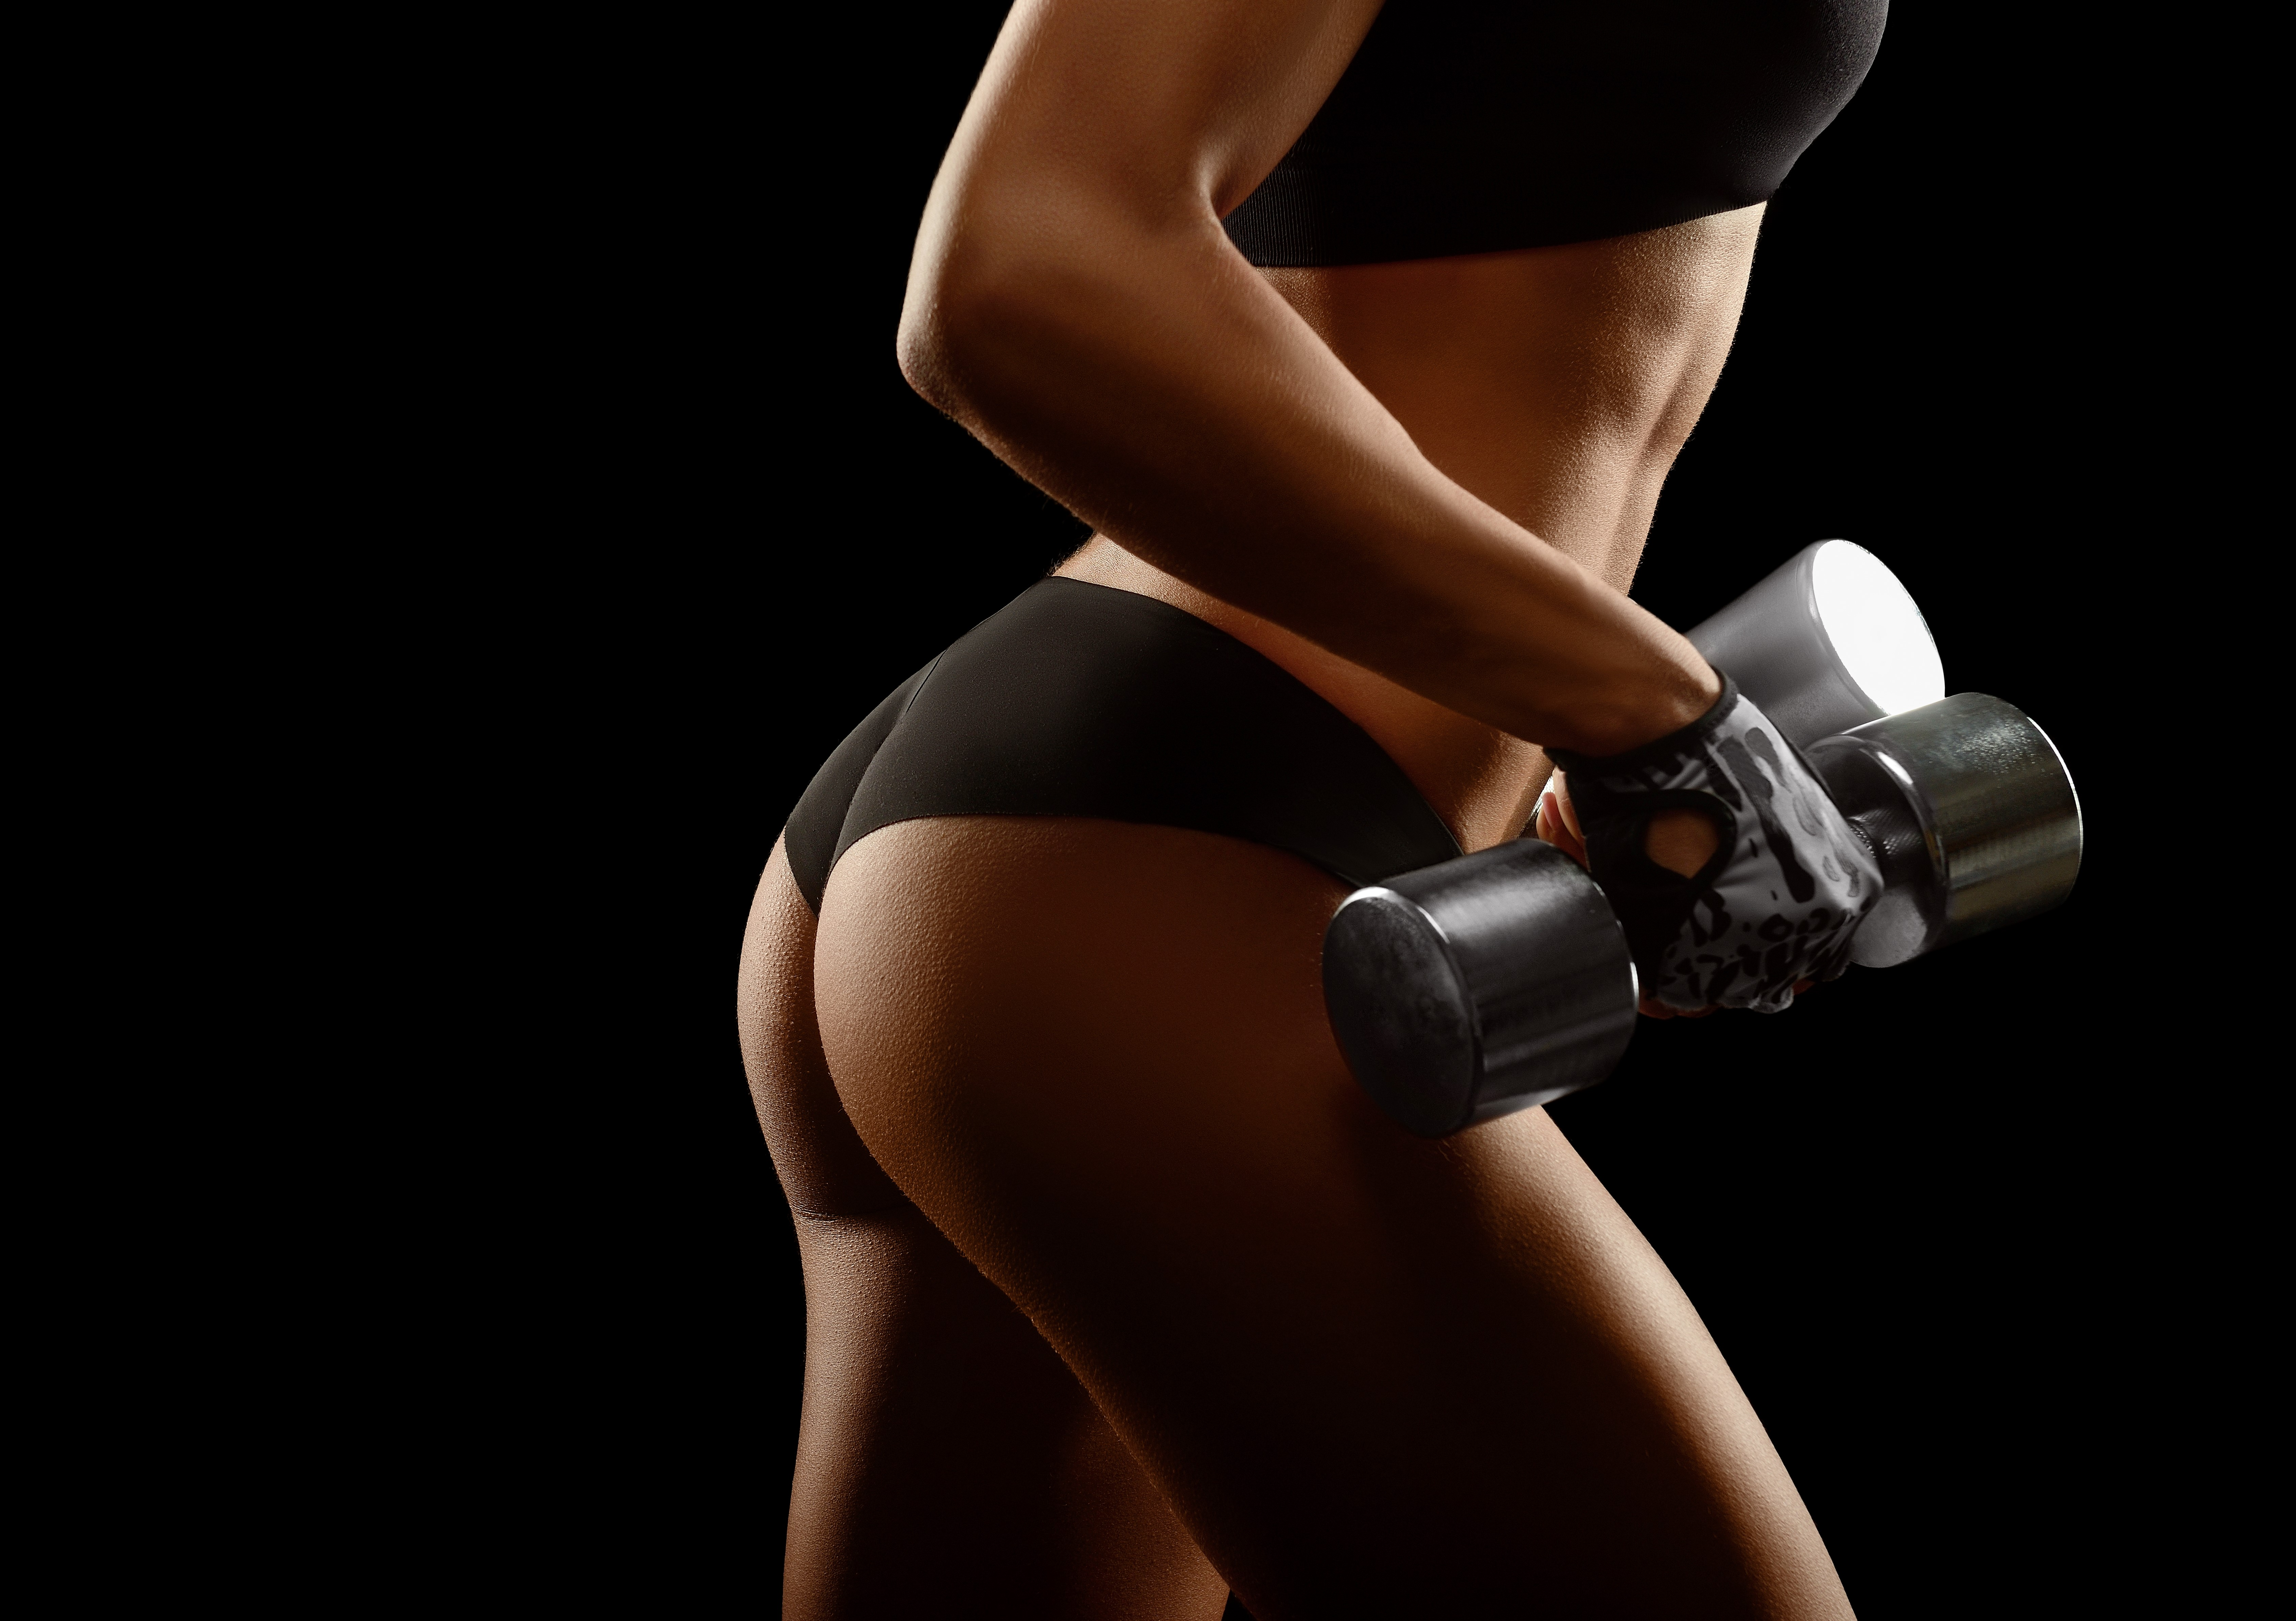 get a bigger butt fast naturally at home